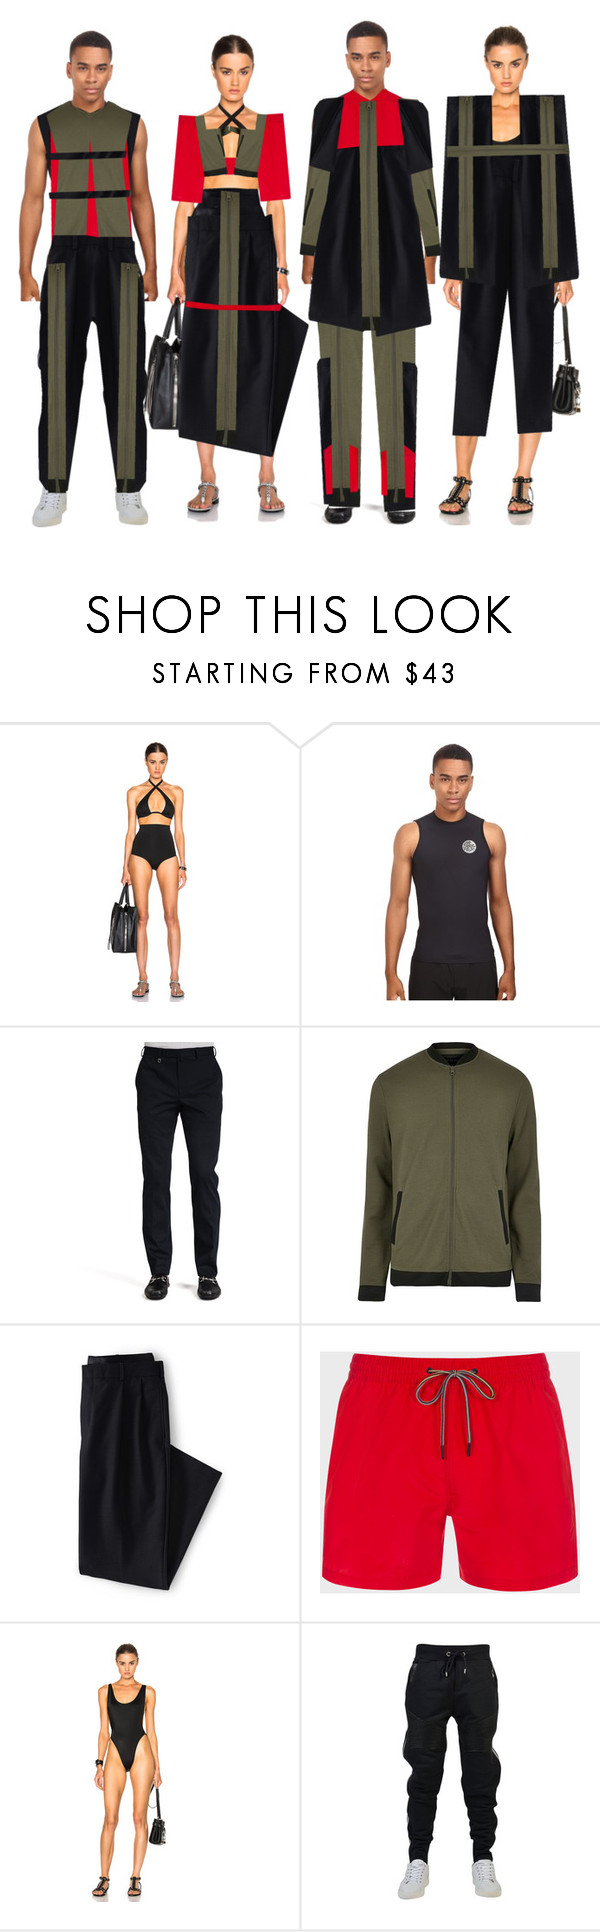 """""""Fashion Collection"""" by coppin-s ❤ liked on Polyvore featuring Ephemera, Rip Curl, Salvatore Ferragamo, River Island, Lands' End, Paul Smith, Norma Kamali and Philipp Plein"""